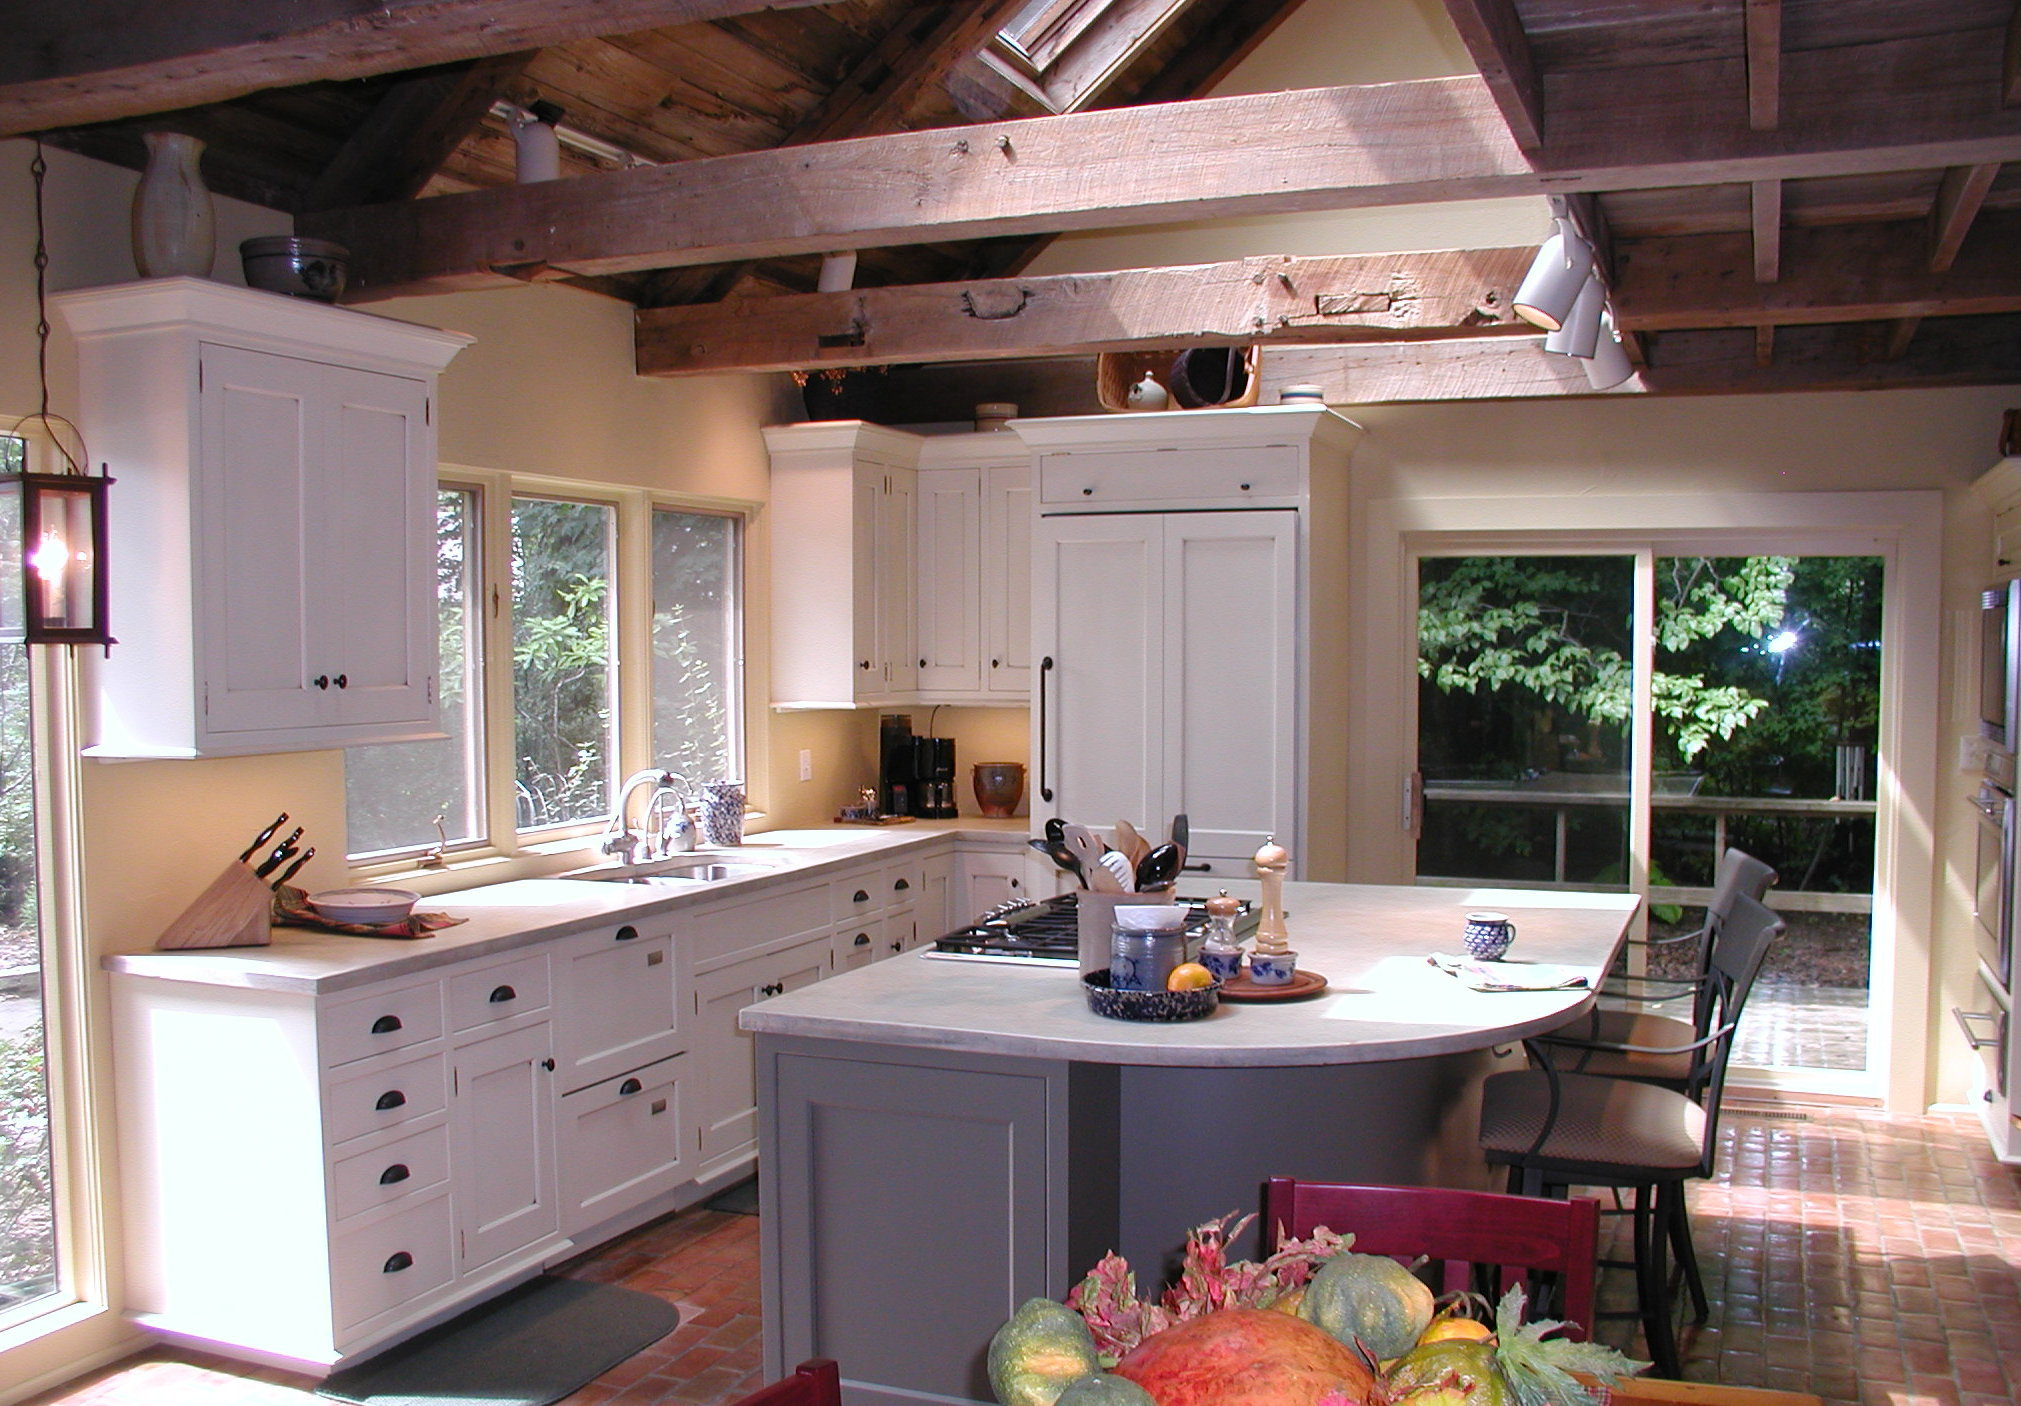 Featured Image of Simply Modern Kitchen With Wood Beam Ceiling